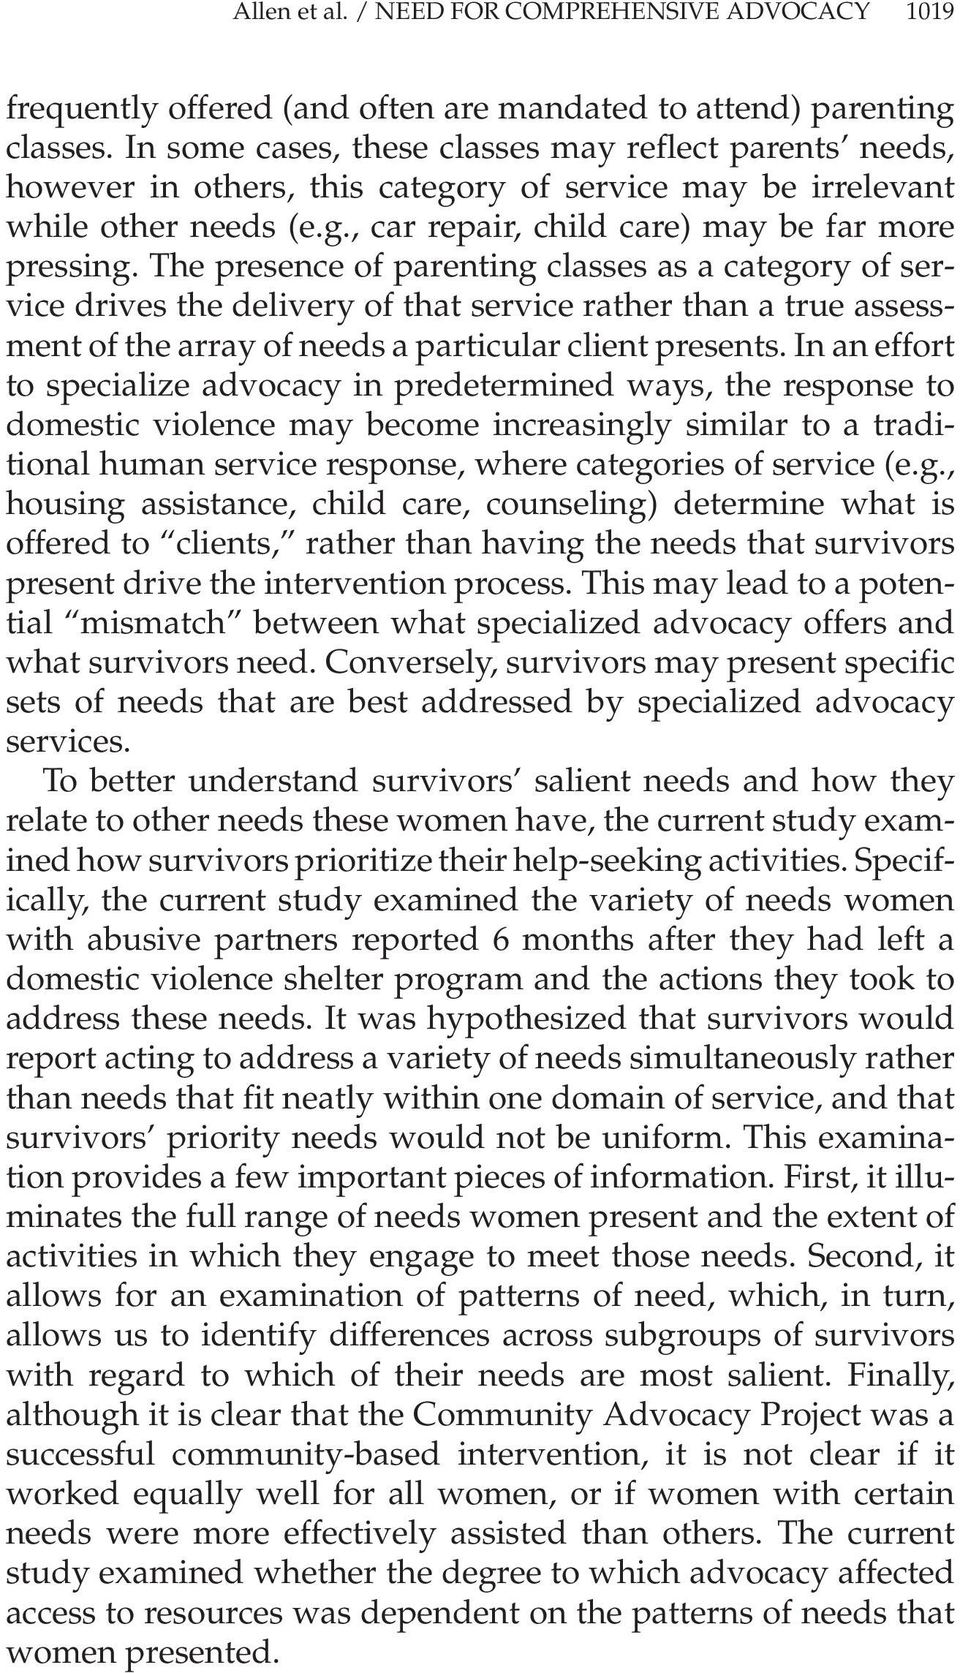 The presence of parenting classes as a category of service drives the delivery of that service rather than a true assessment of the array of needs a particular client presents.